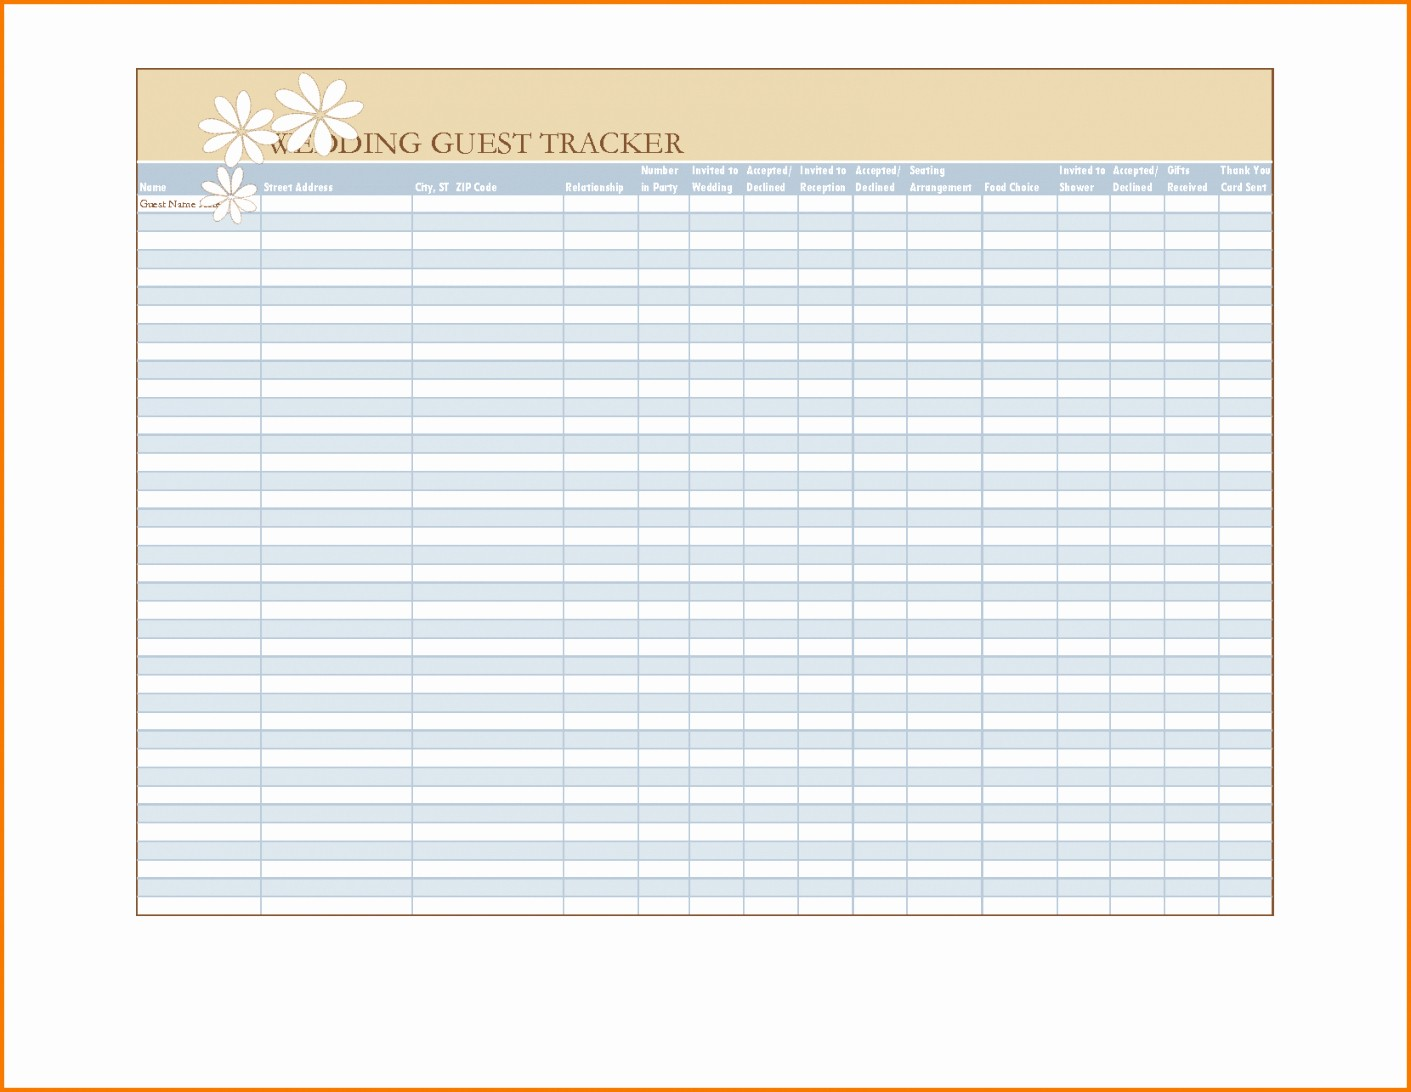 Wedding Guest List Spreadsheet Excel Best Of Downloadable Wedding Guest List Spreadsheet Imzadi